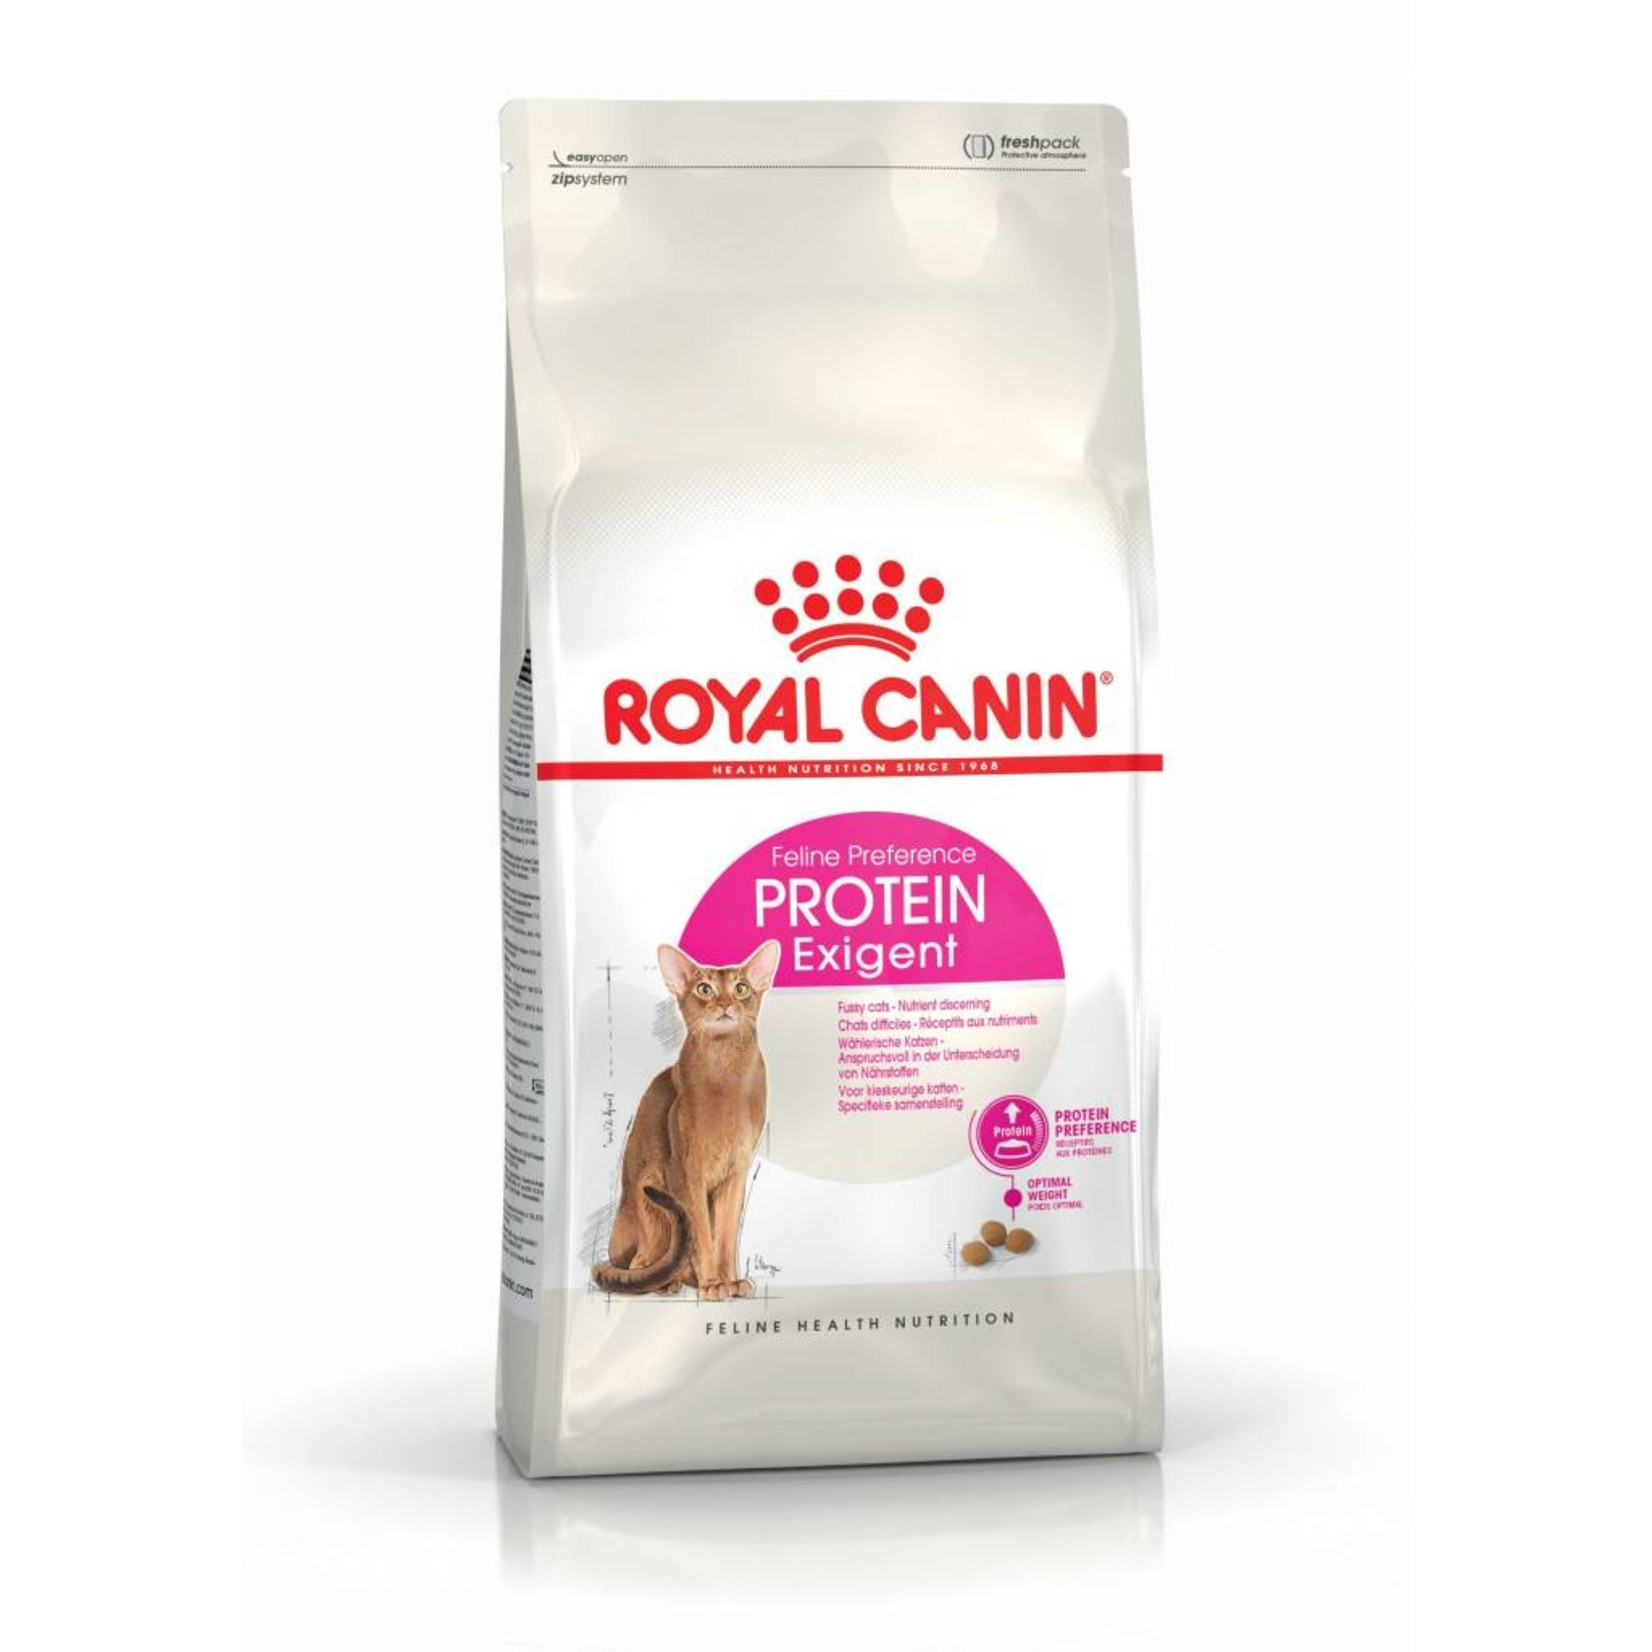 Royal Canin Exigent Protein Preference Adult Cat Dry Food